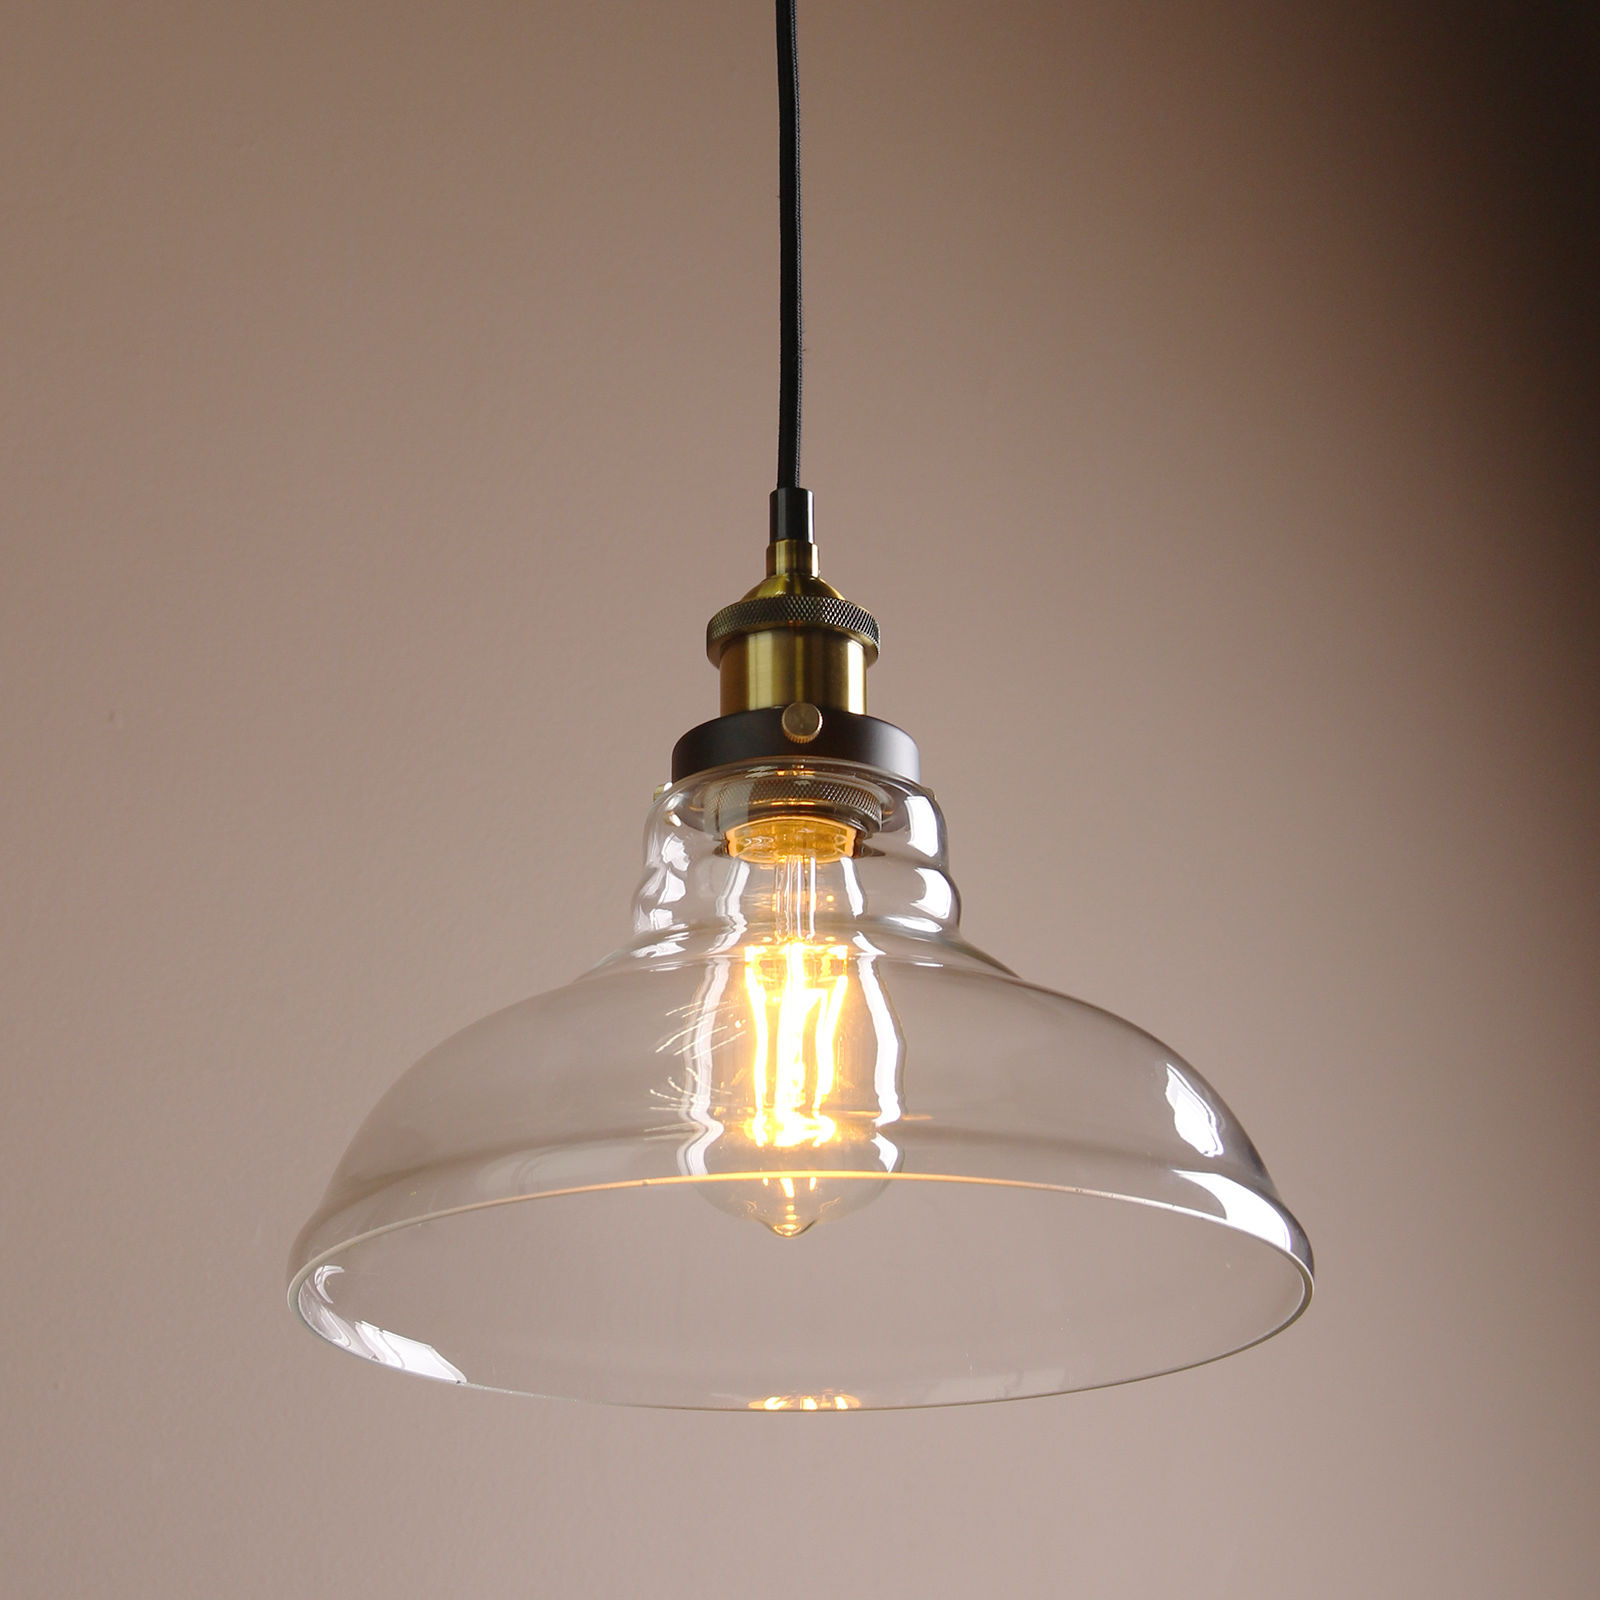 Cheap Glass Pendant Lights Permo Pendant Light Chandelier Vintage Industrial Clear